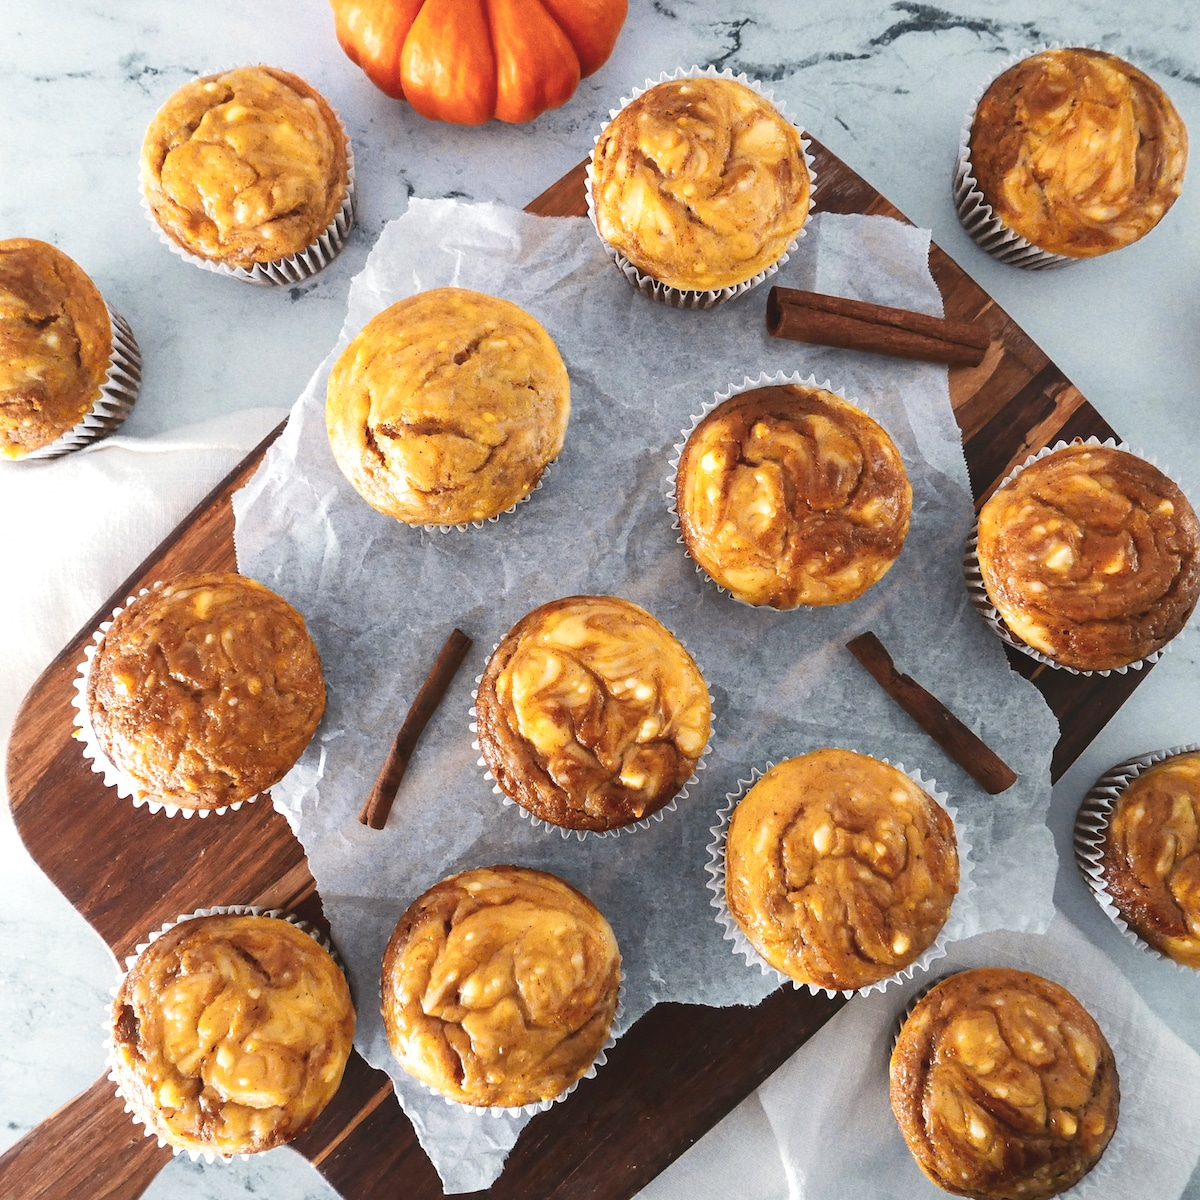 pumpkin cream cheese swirl muffins arranged on a wooden cutting board with parchment, cinnamon sticks, and mini pumpkins